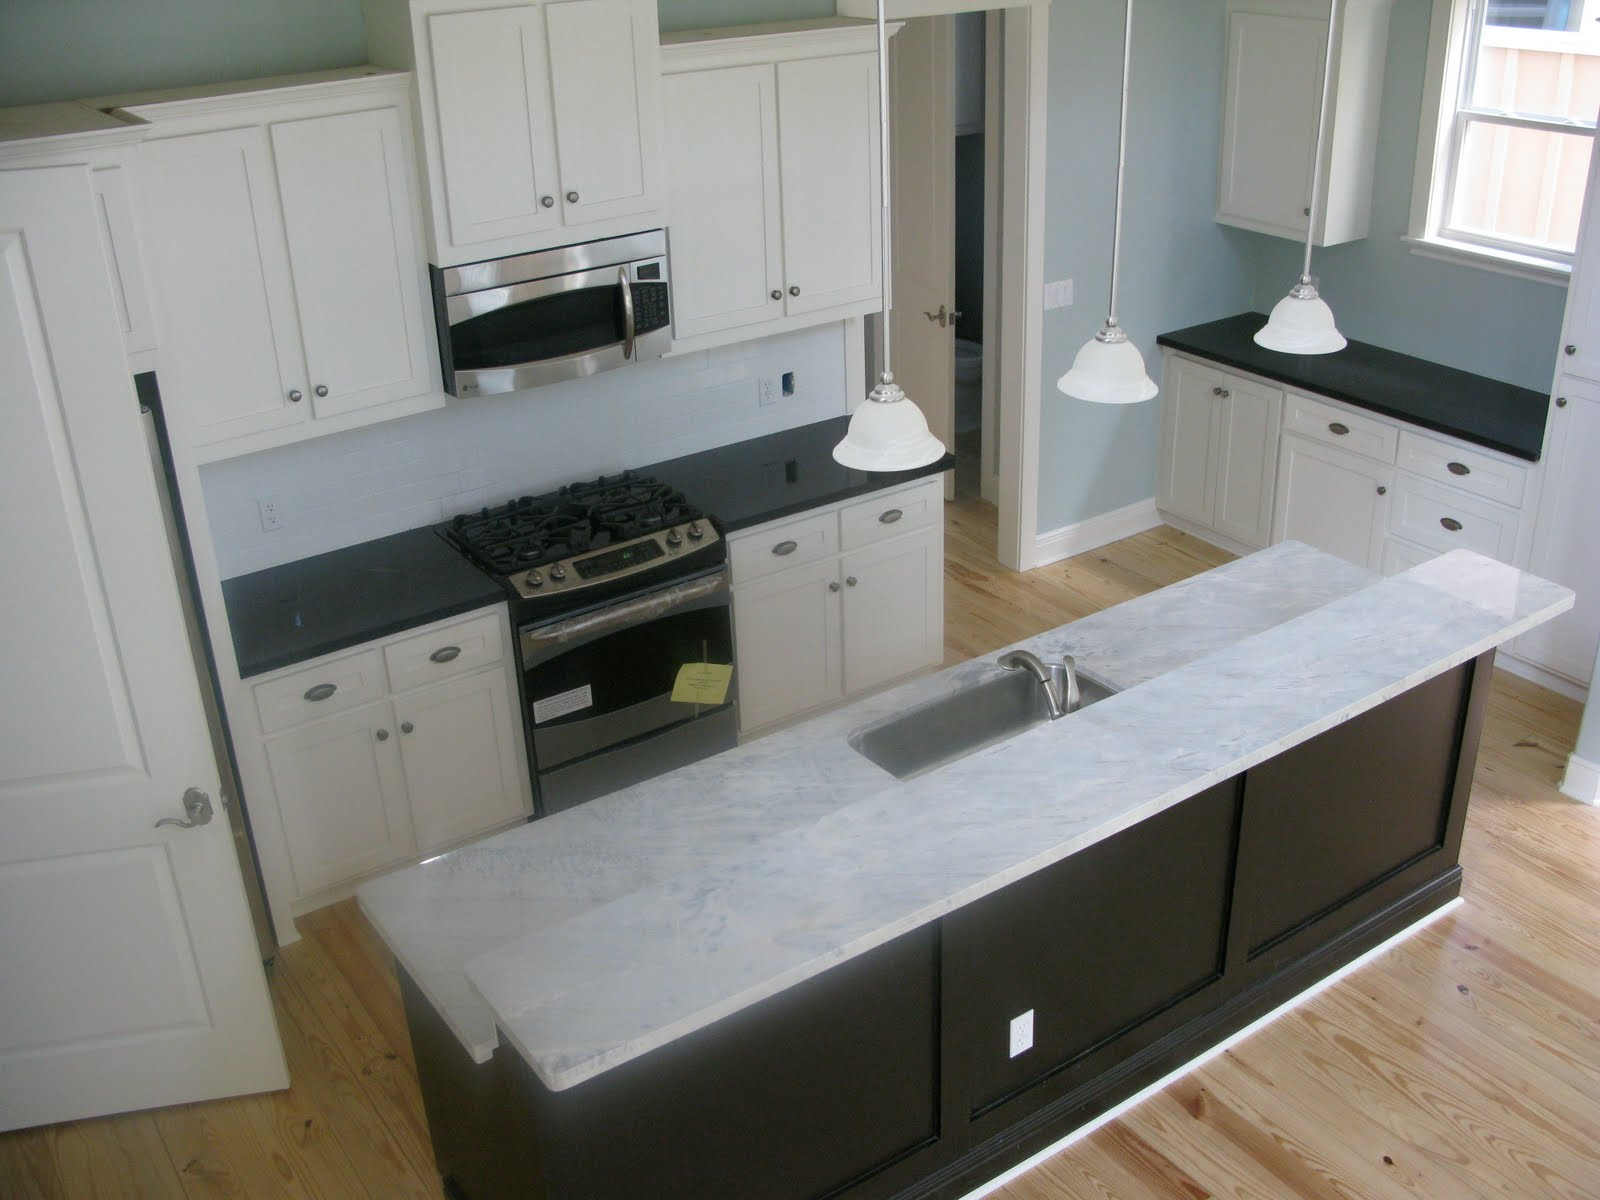 How Much For Marble Countertops Jvw Home Change Is Good